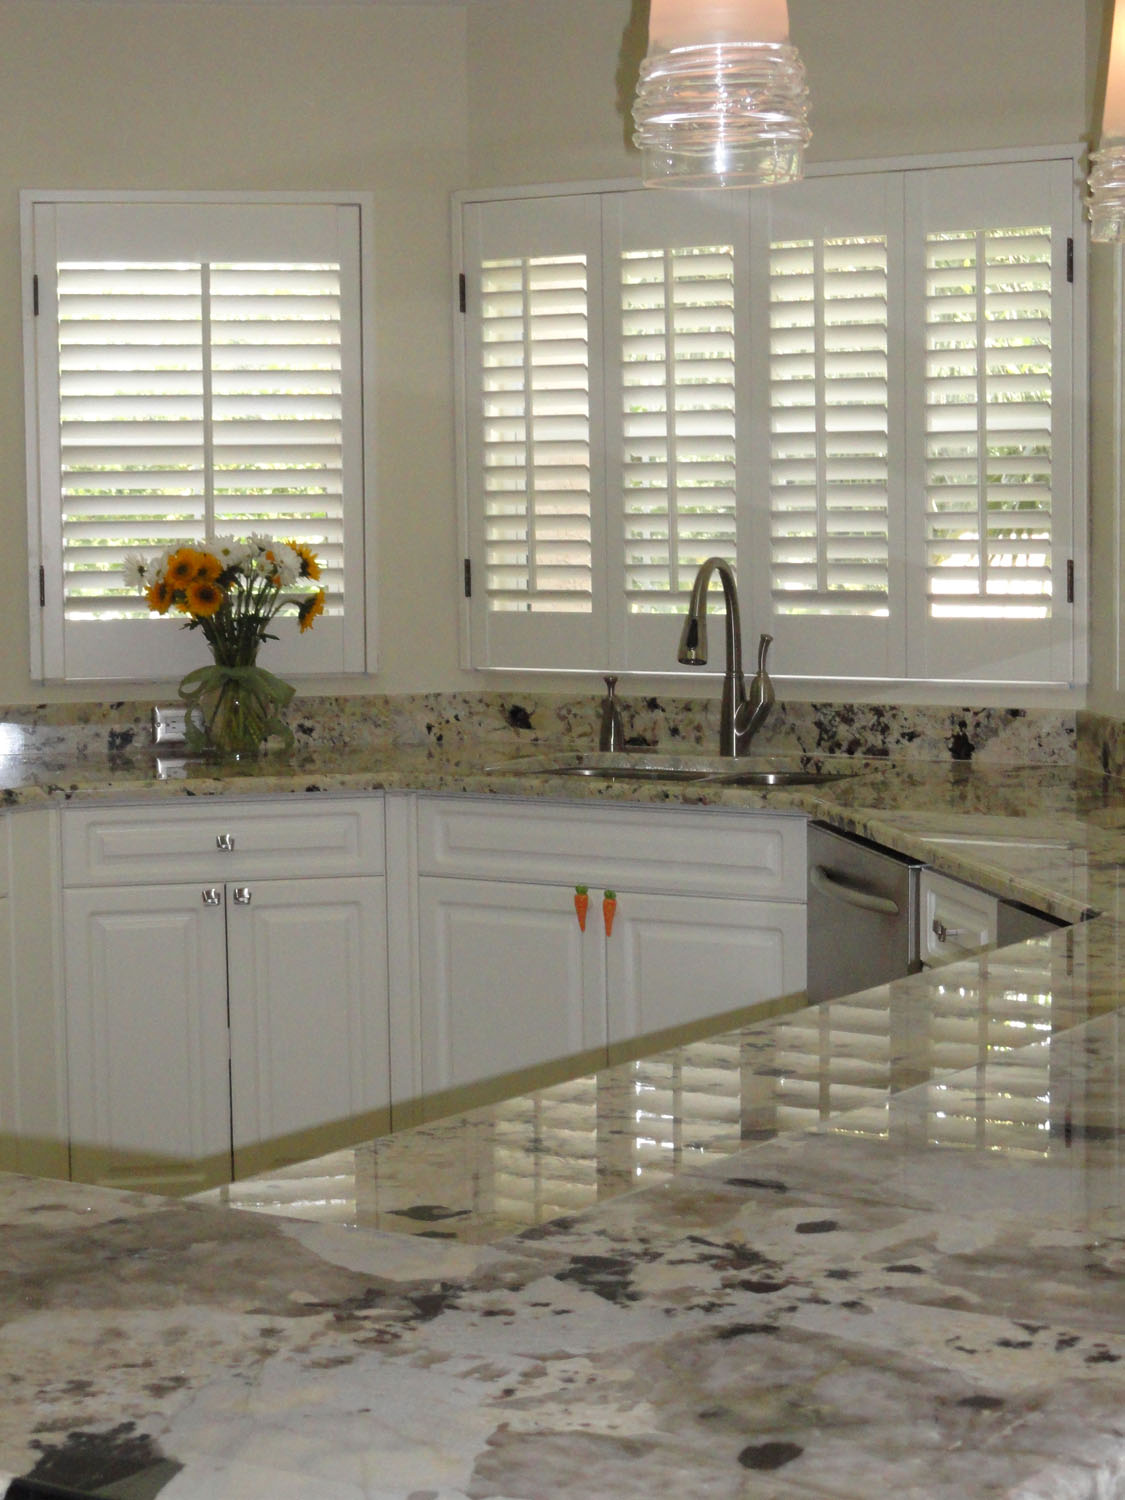 florida-kitchen-renovation-after-006.jpg